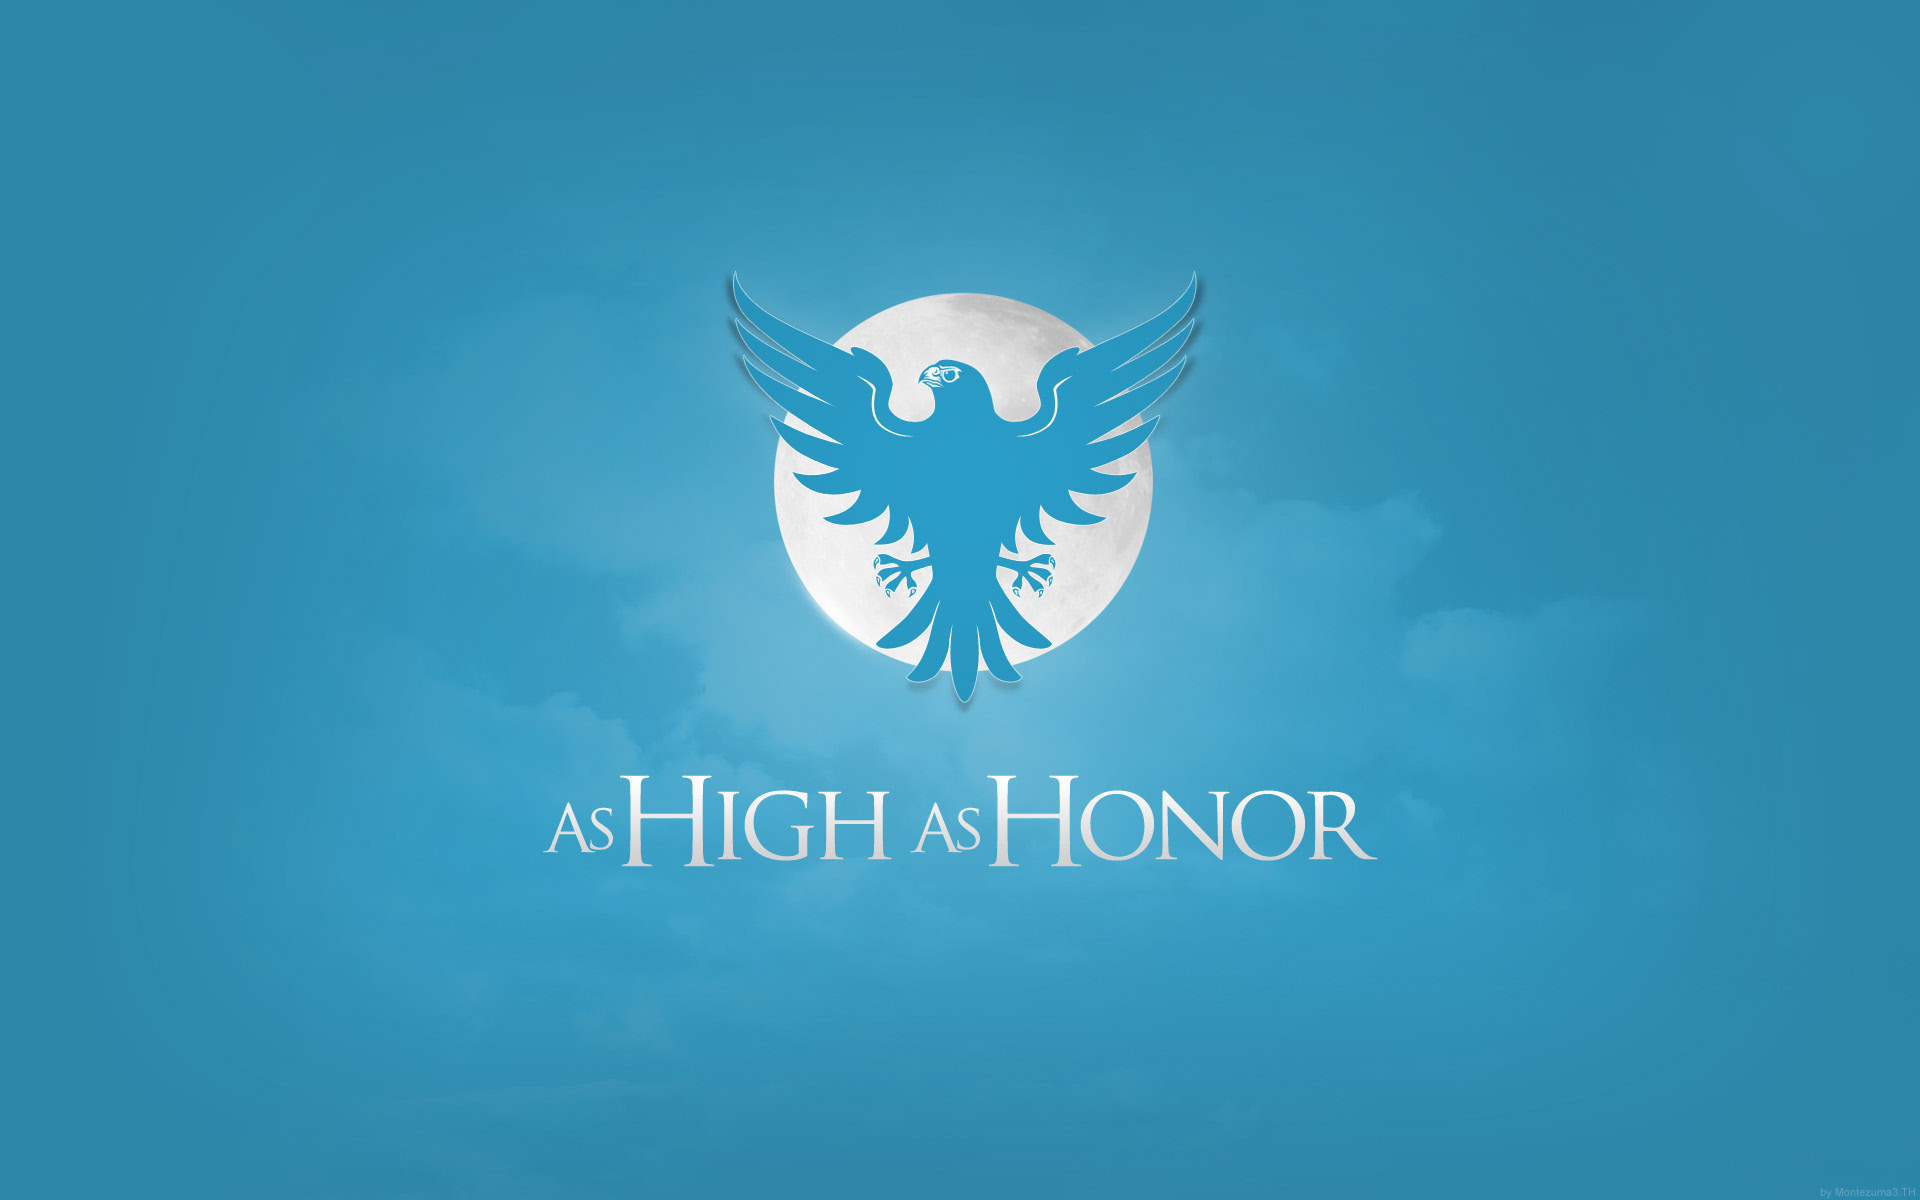 Game Of Thrones House Arryn Wallpaper High Definition High